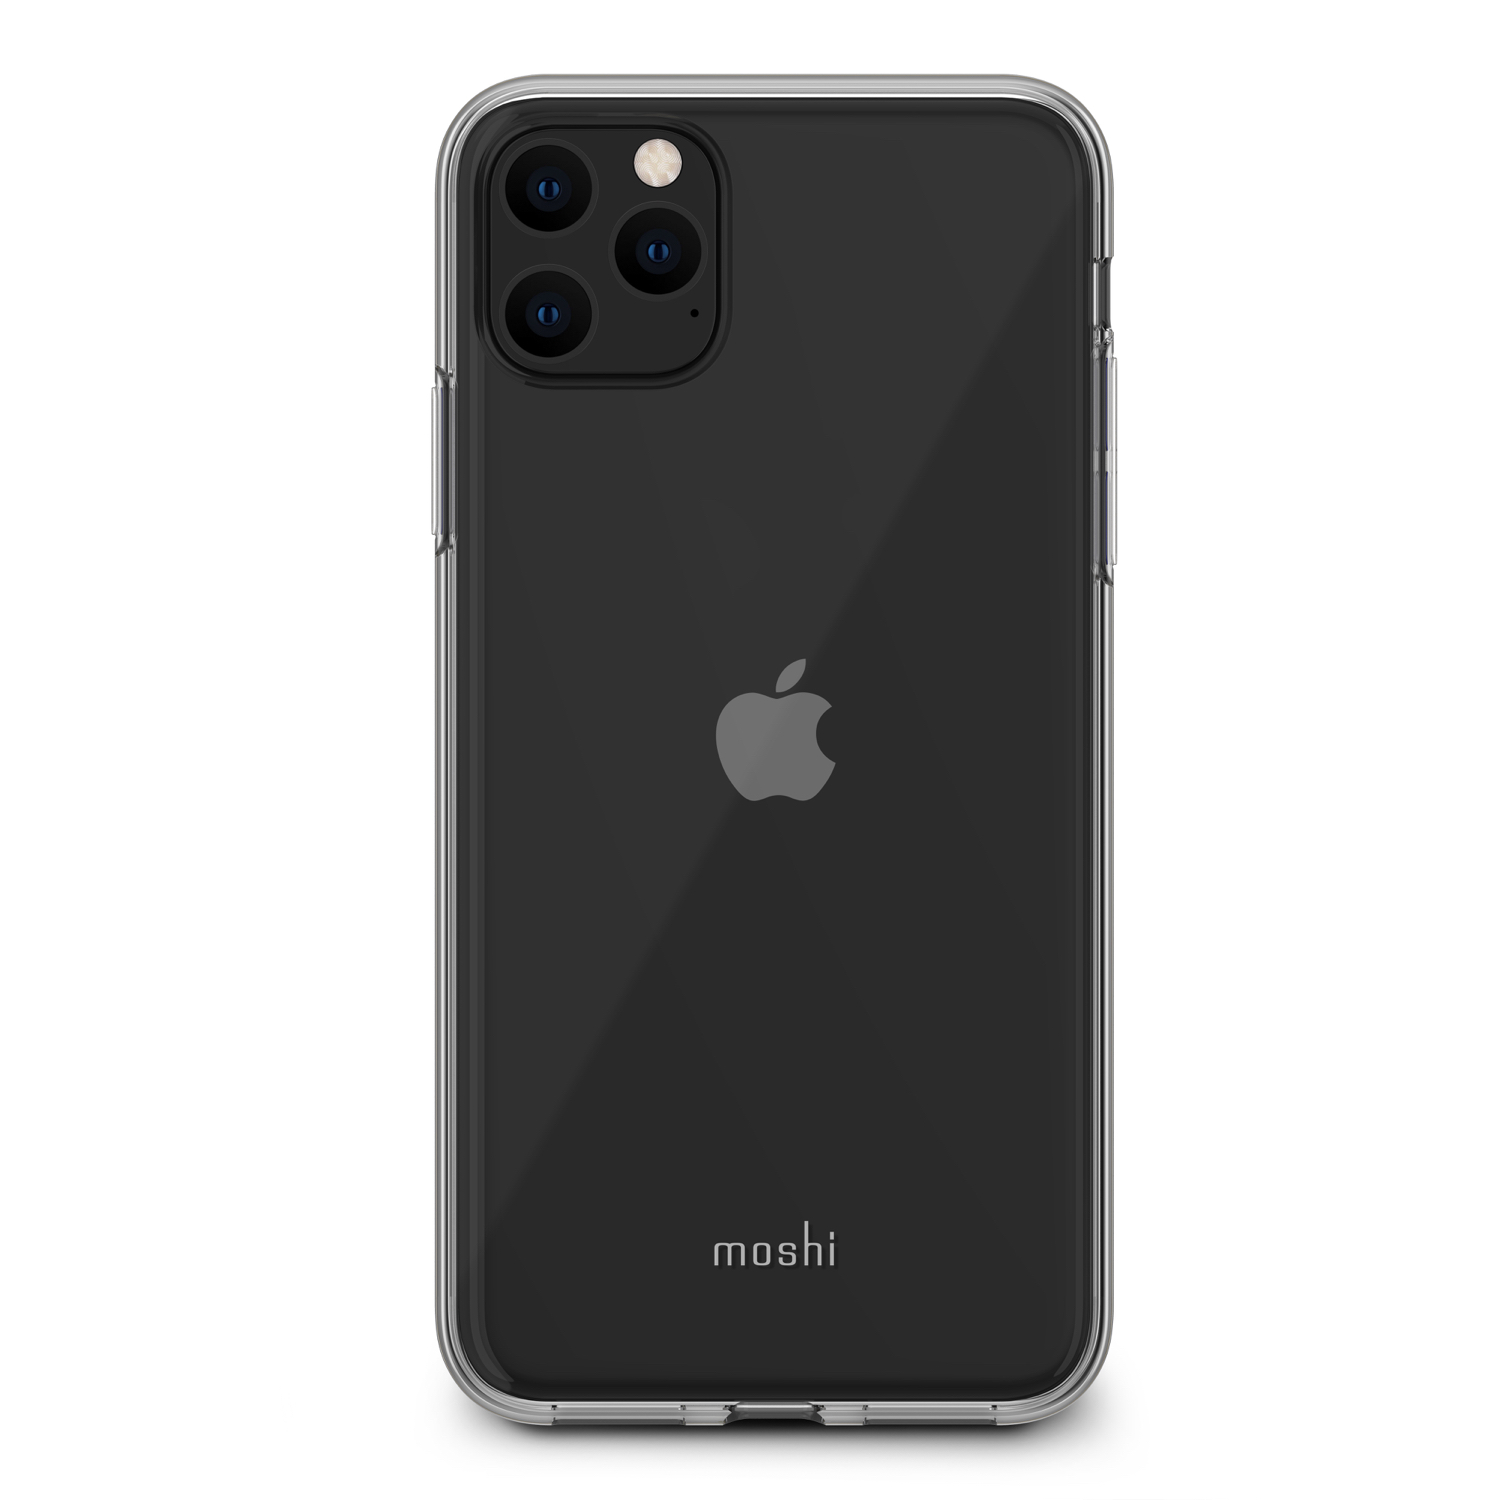 Moshi Vitros Case for iPhone 11 Pro Max